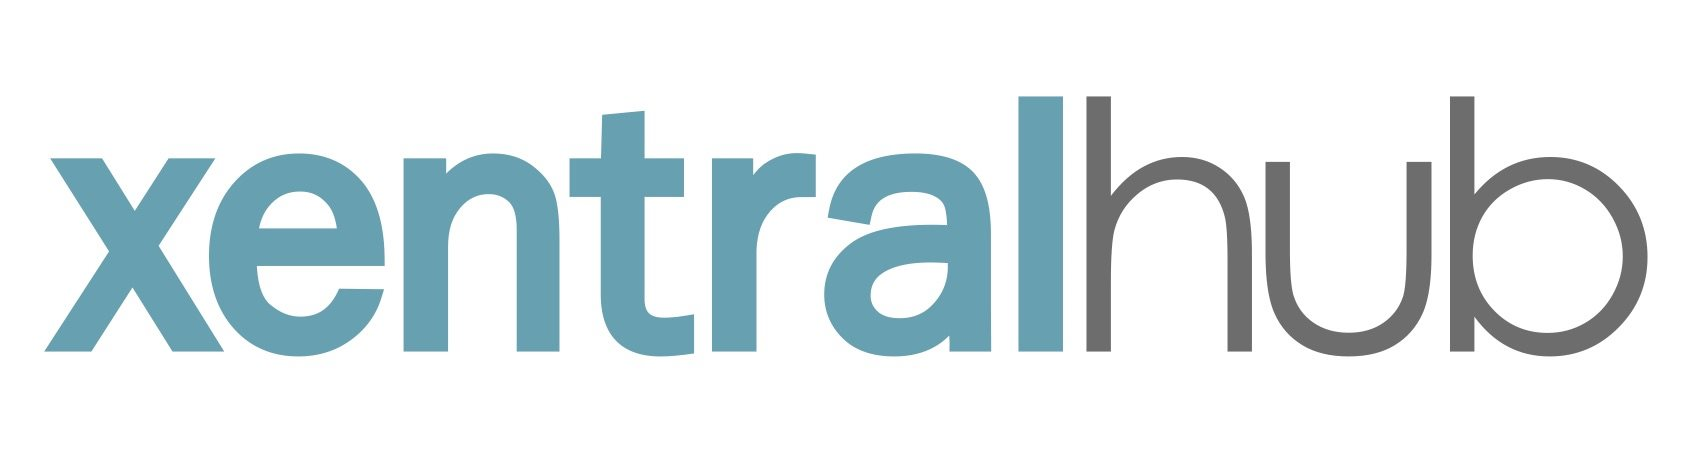 Xentralhub